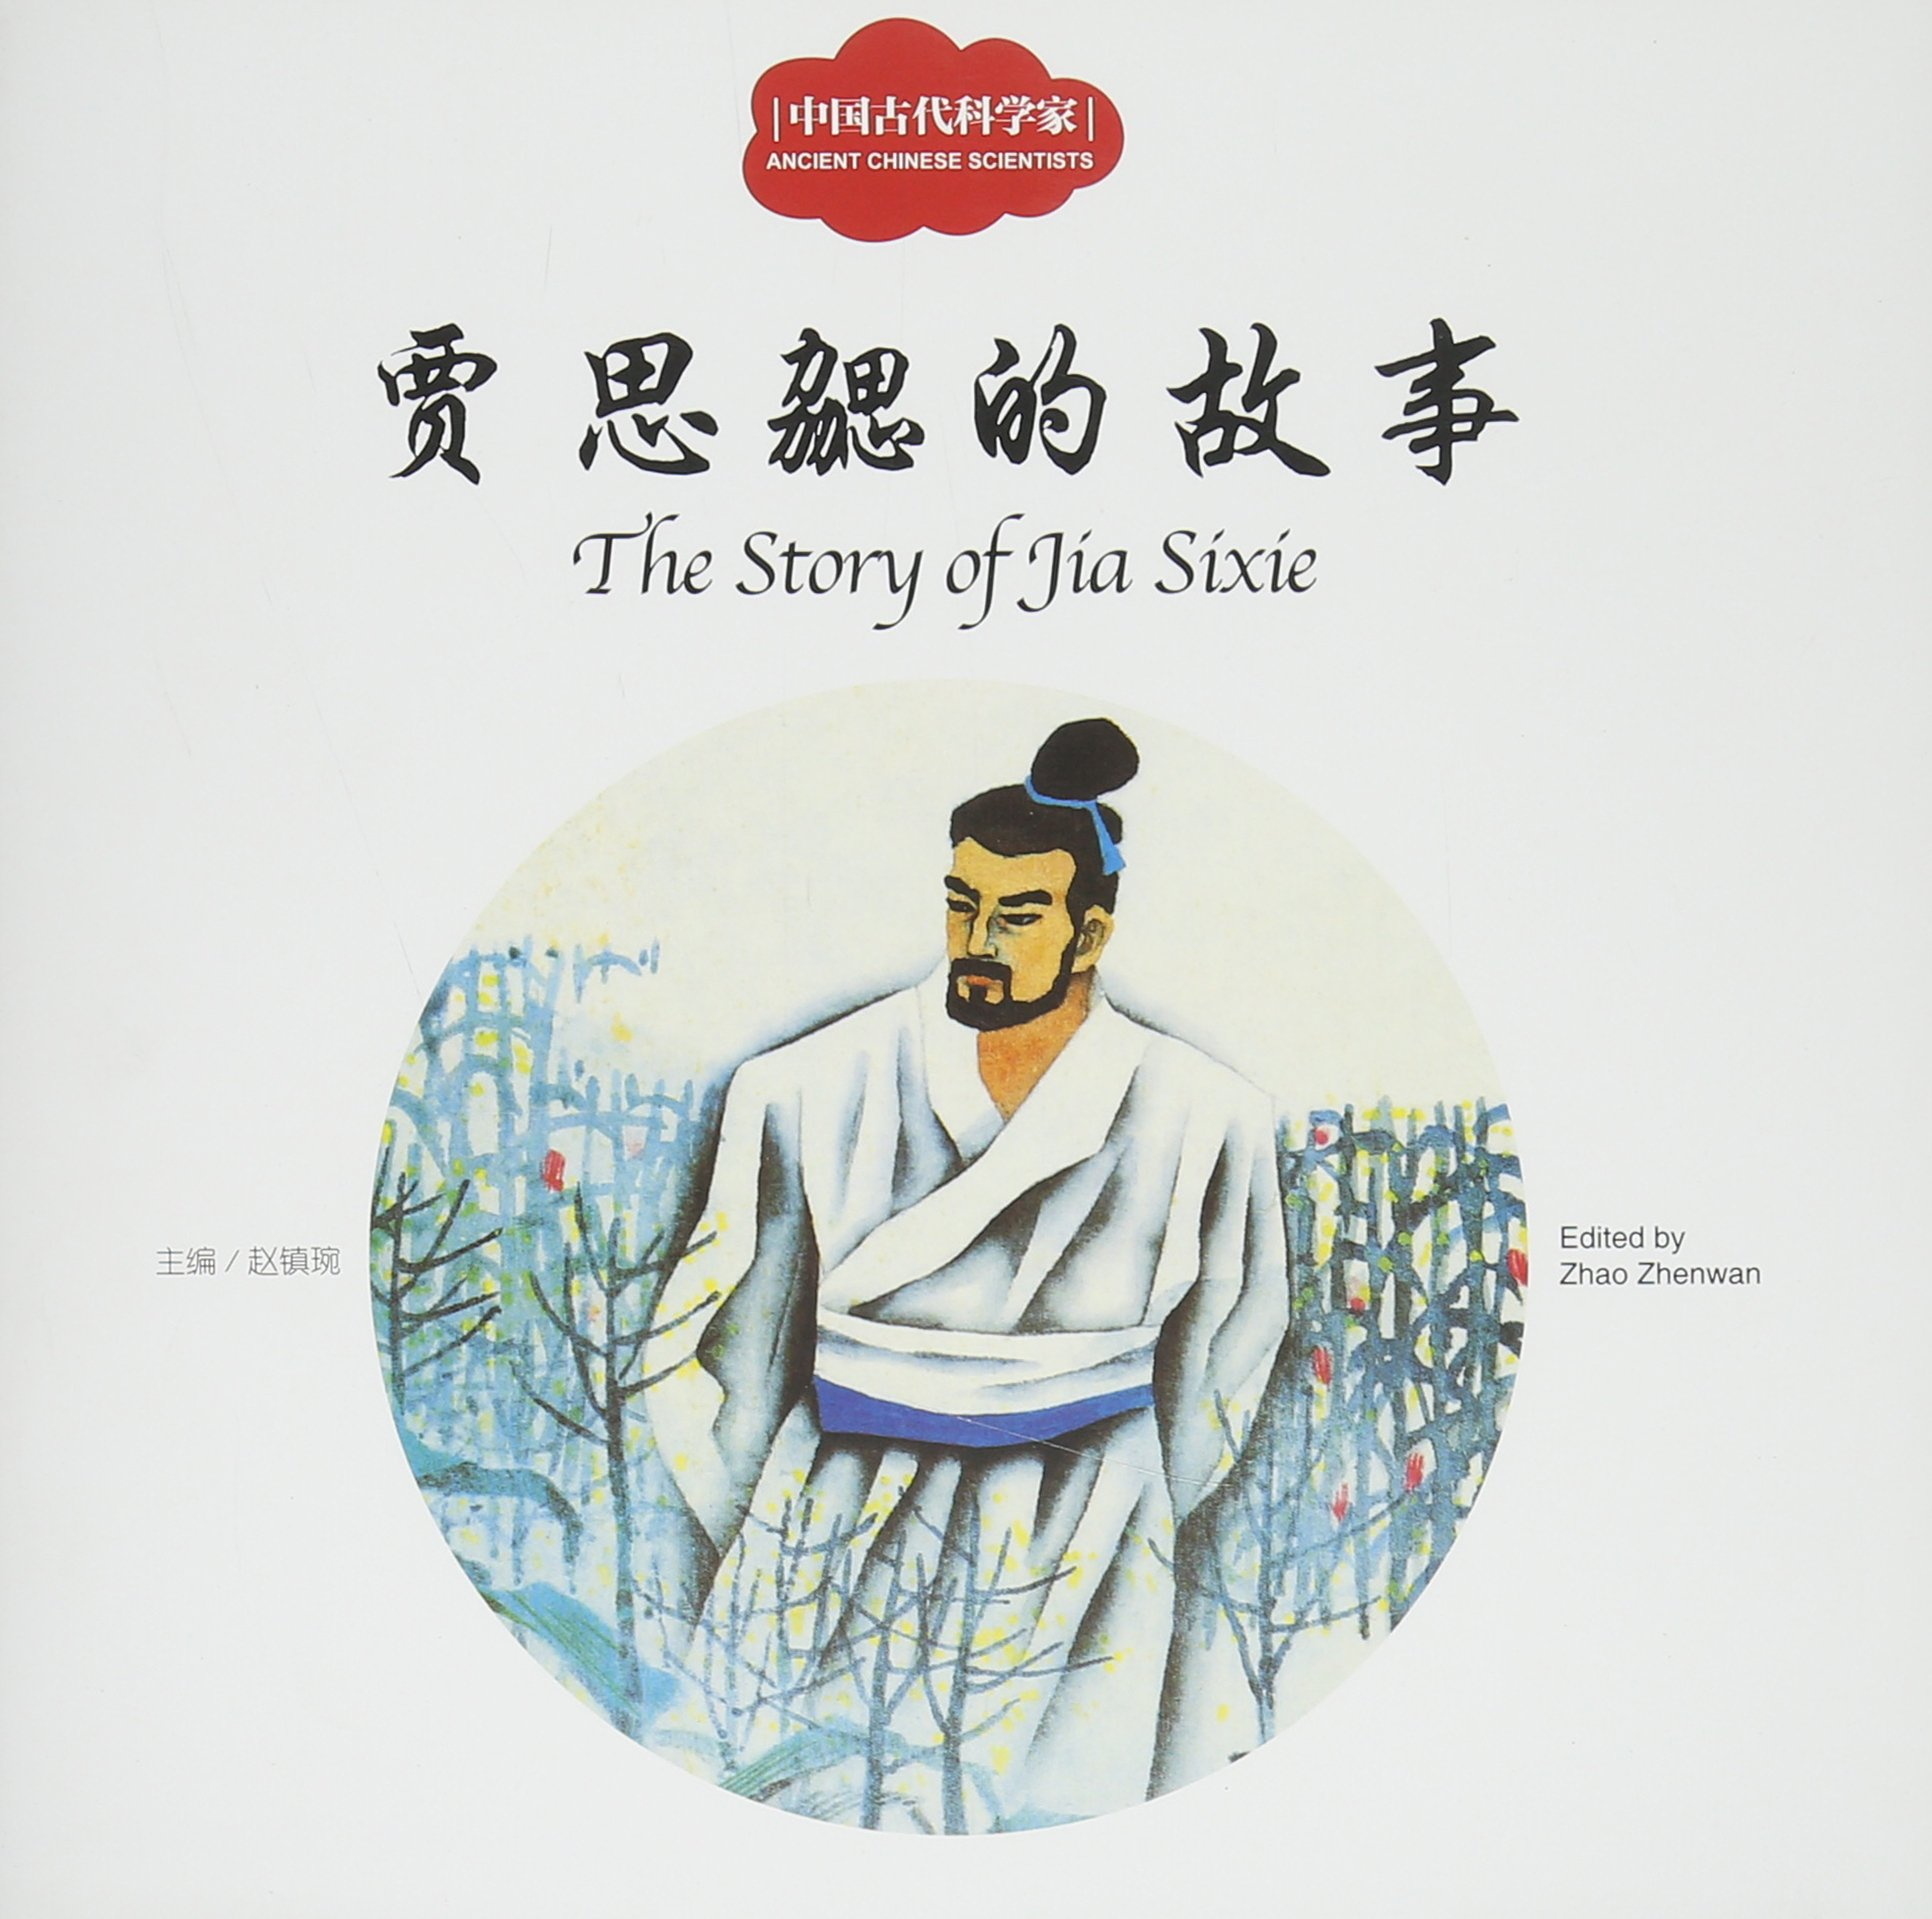 The Story of Jia Sixie - First Books for Early Learning Series